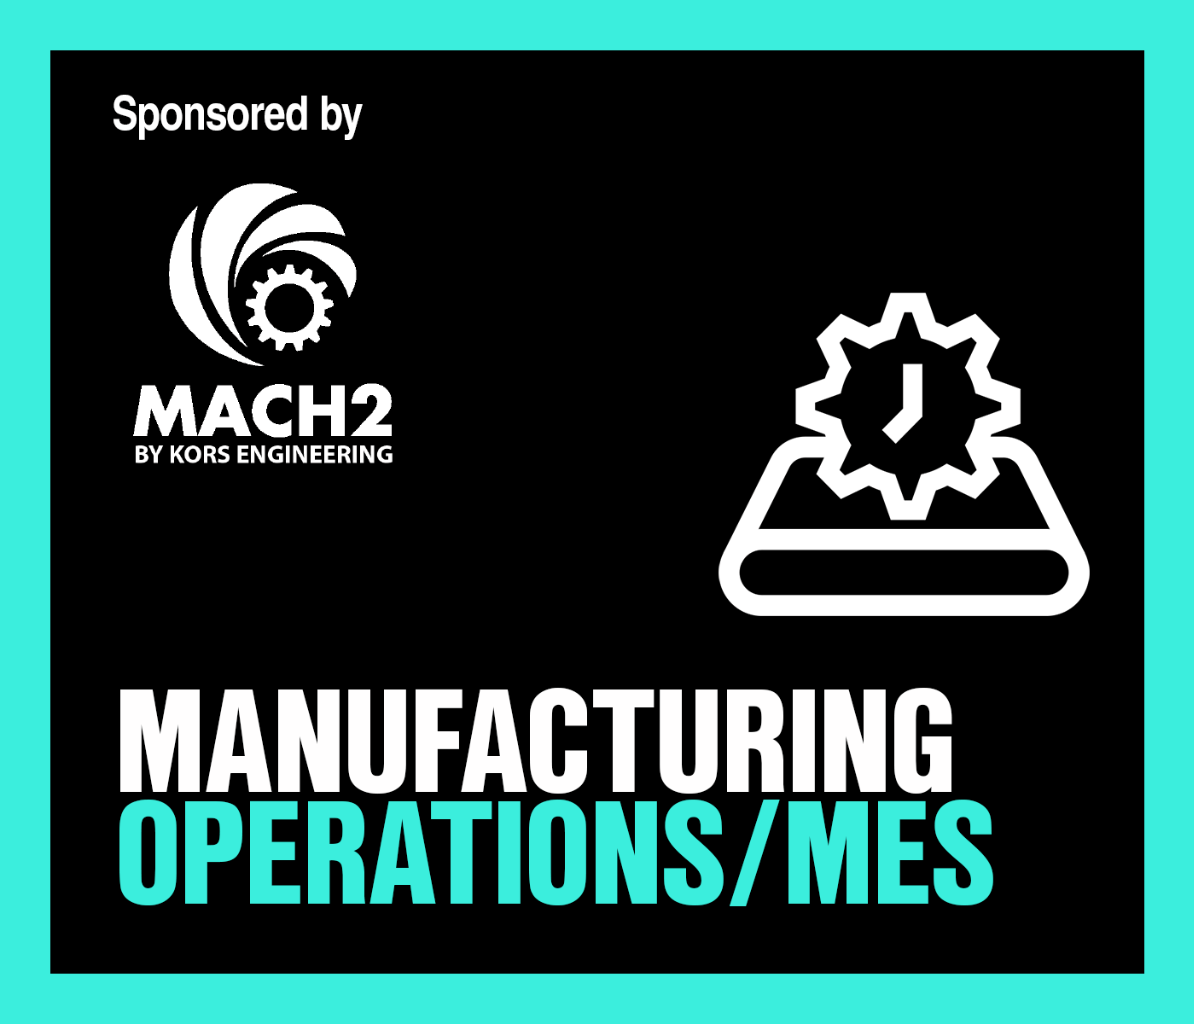 Manufacturing Operations/MES